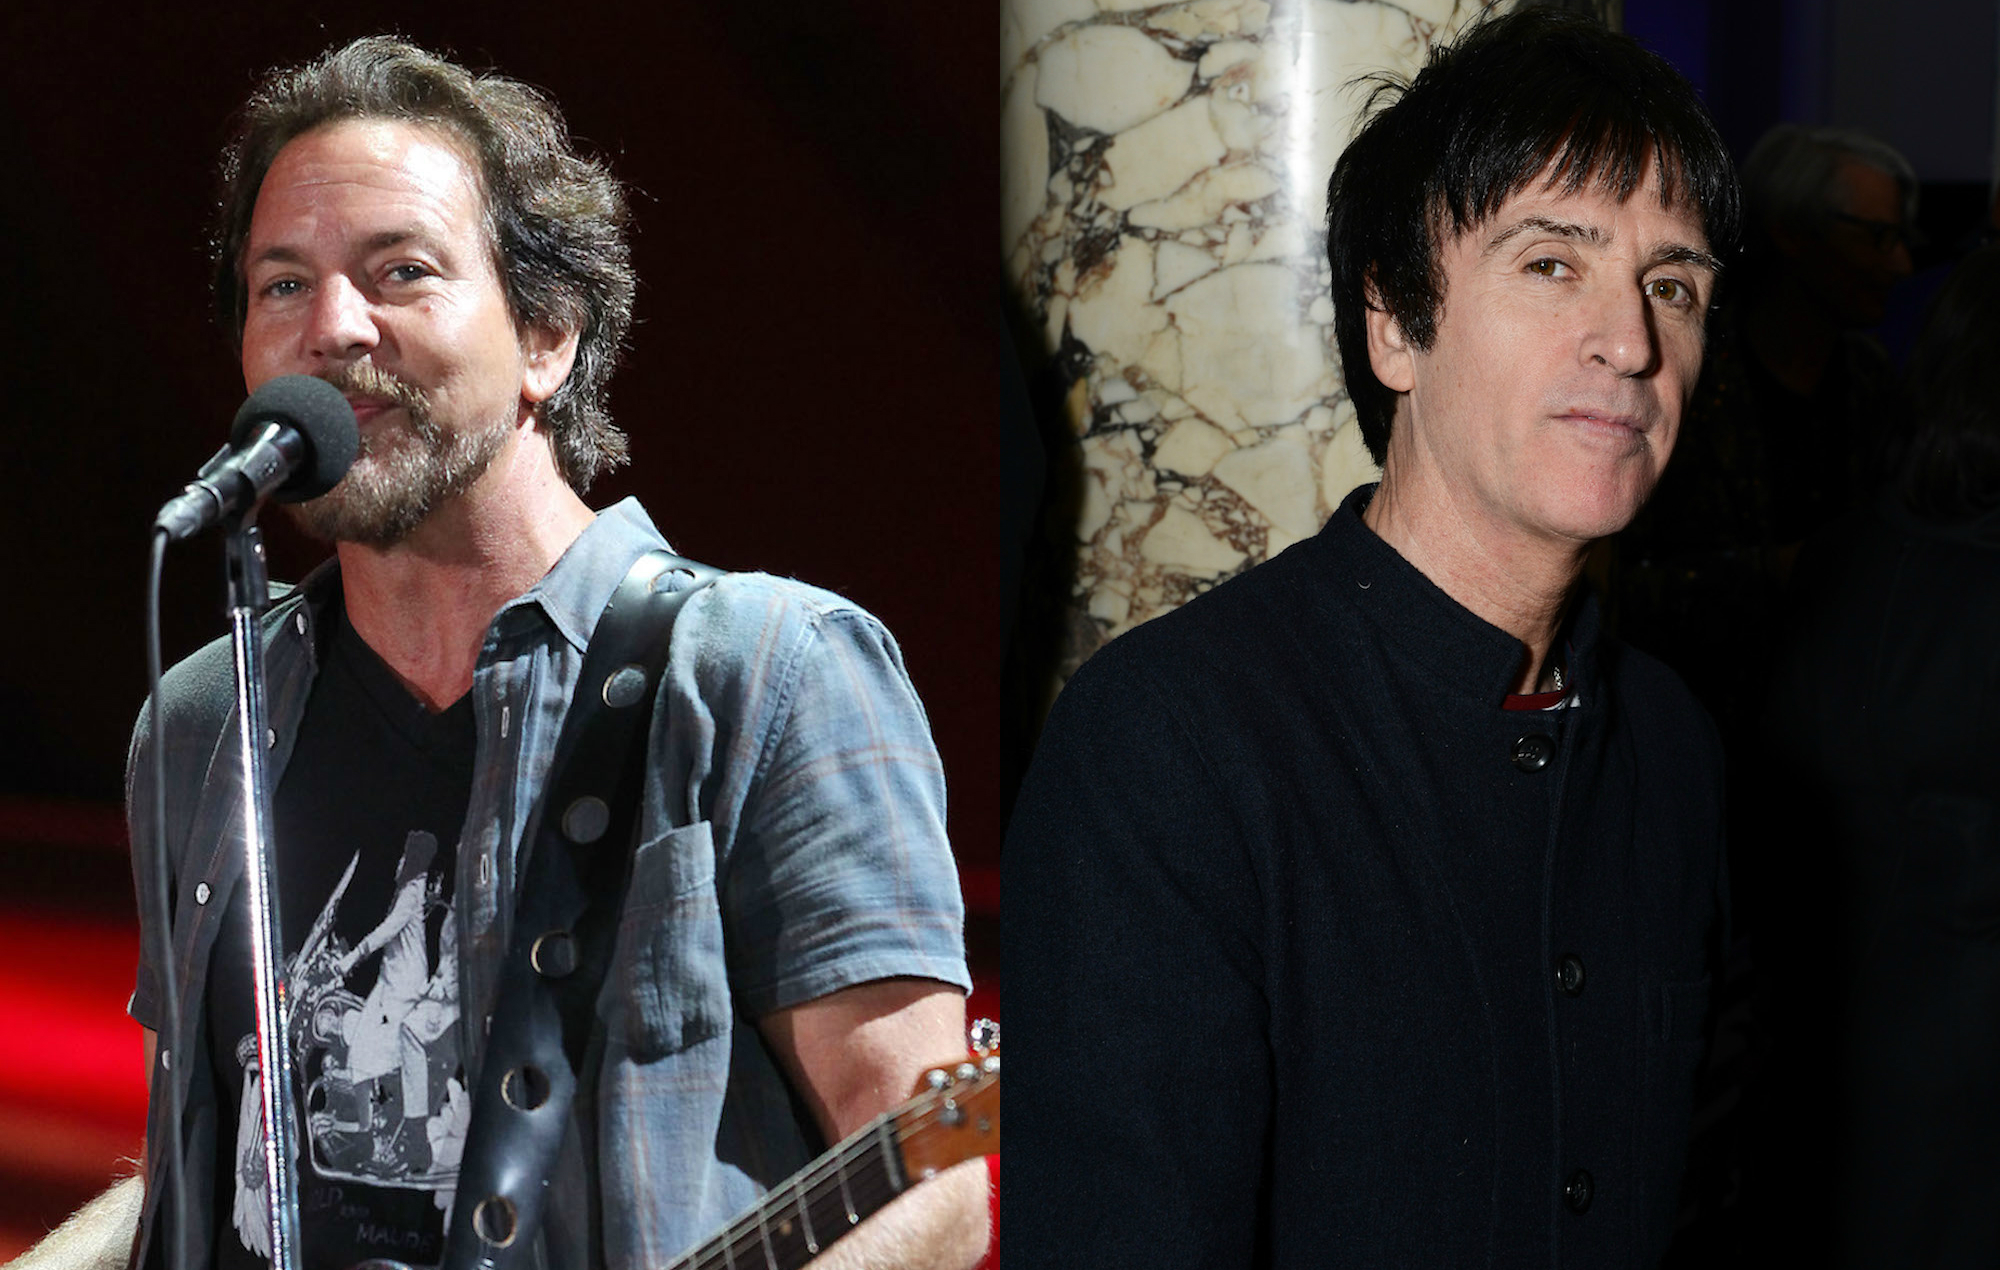 Watch Pearl Jam S Eddie Vedder Cover The Smiths With Johnny Marr